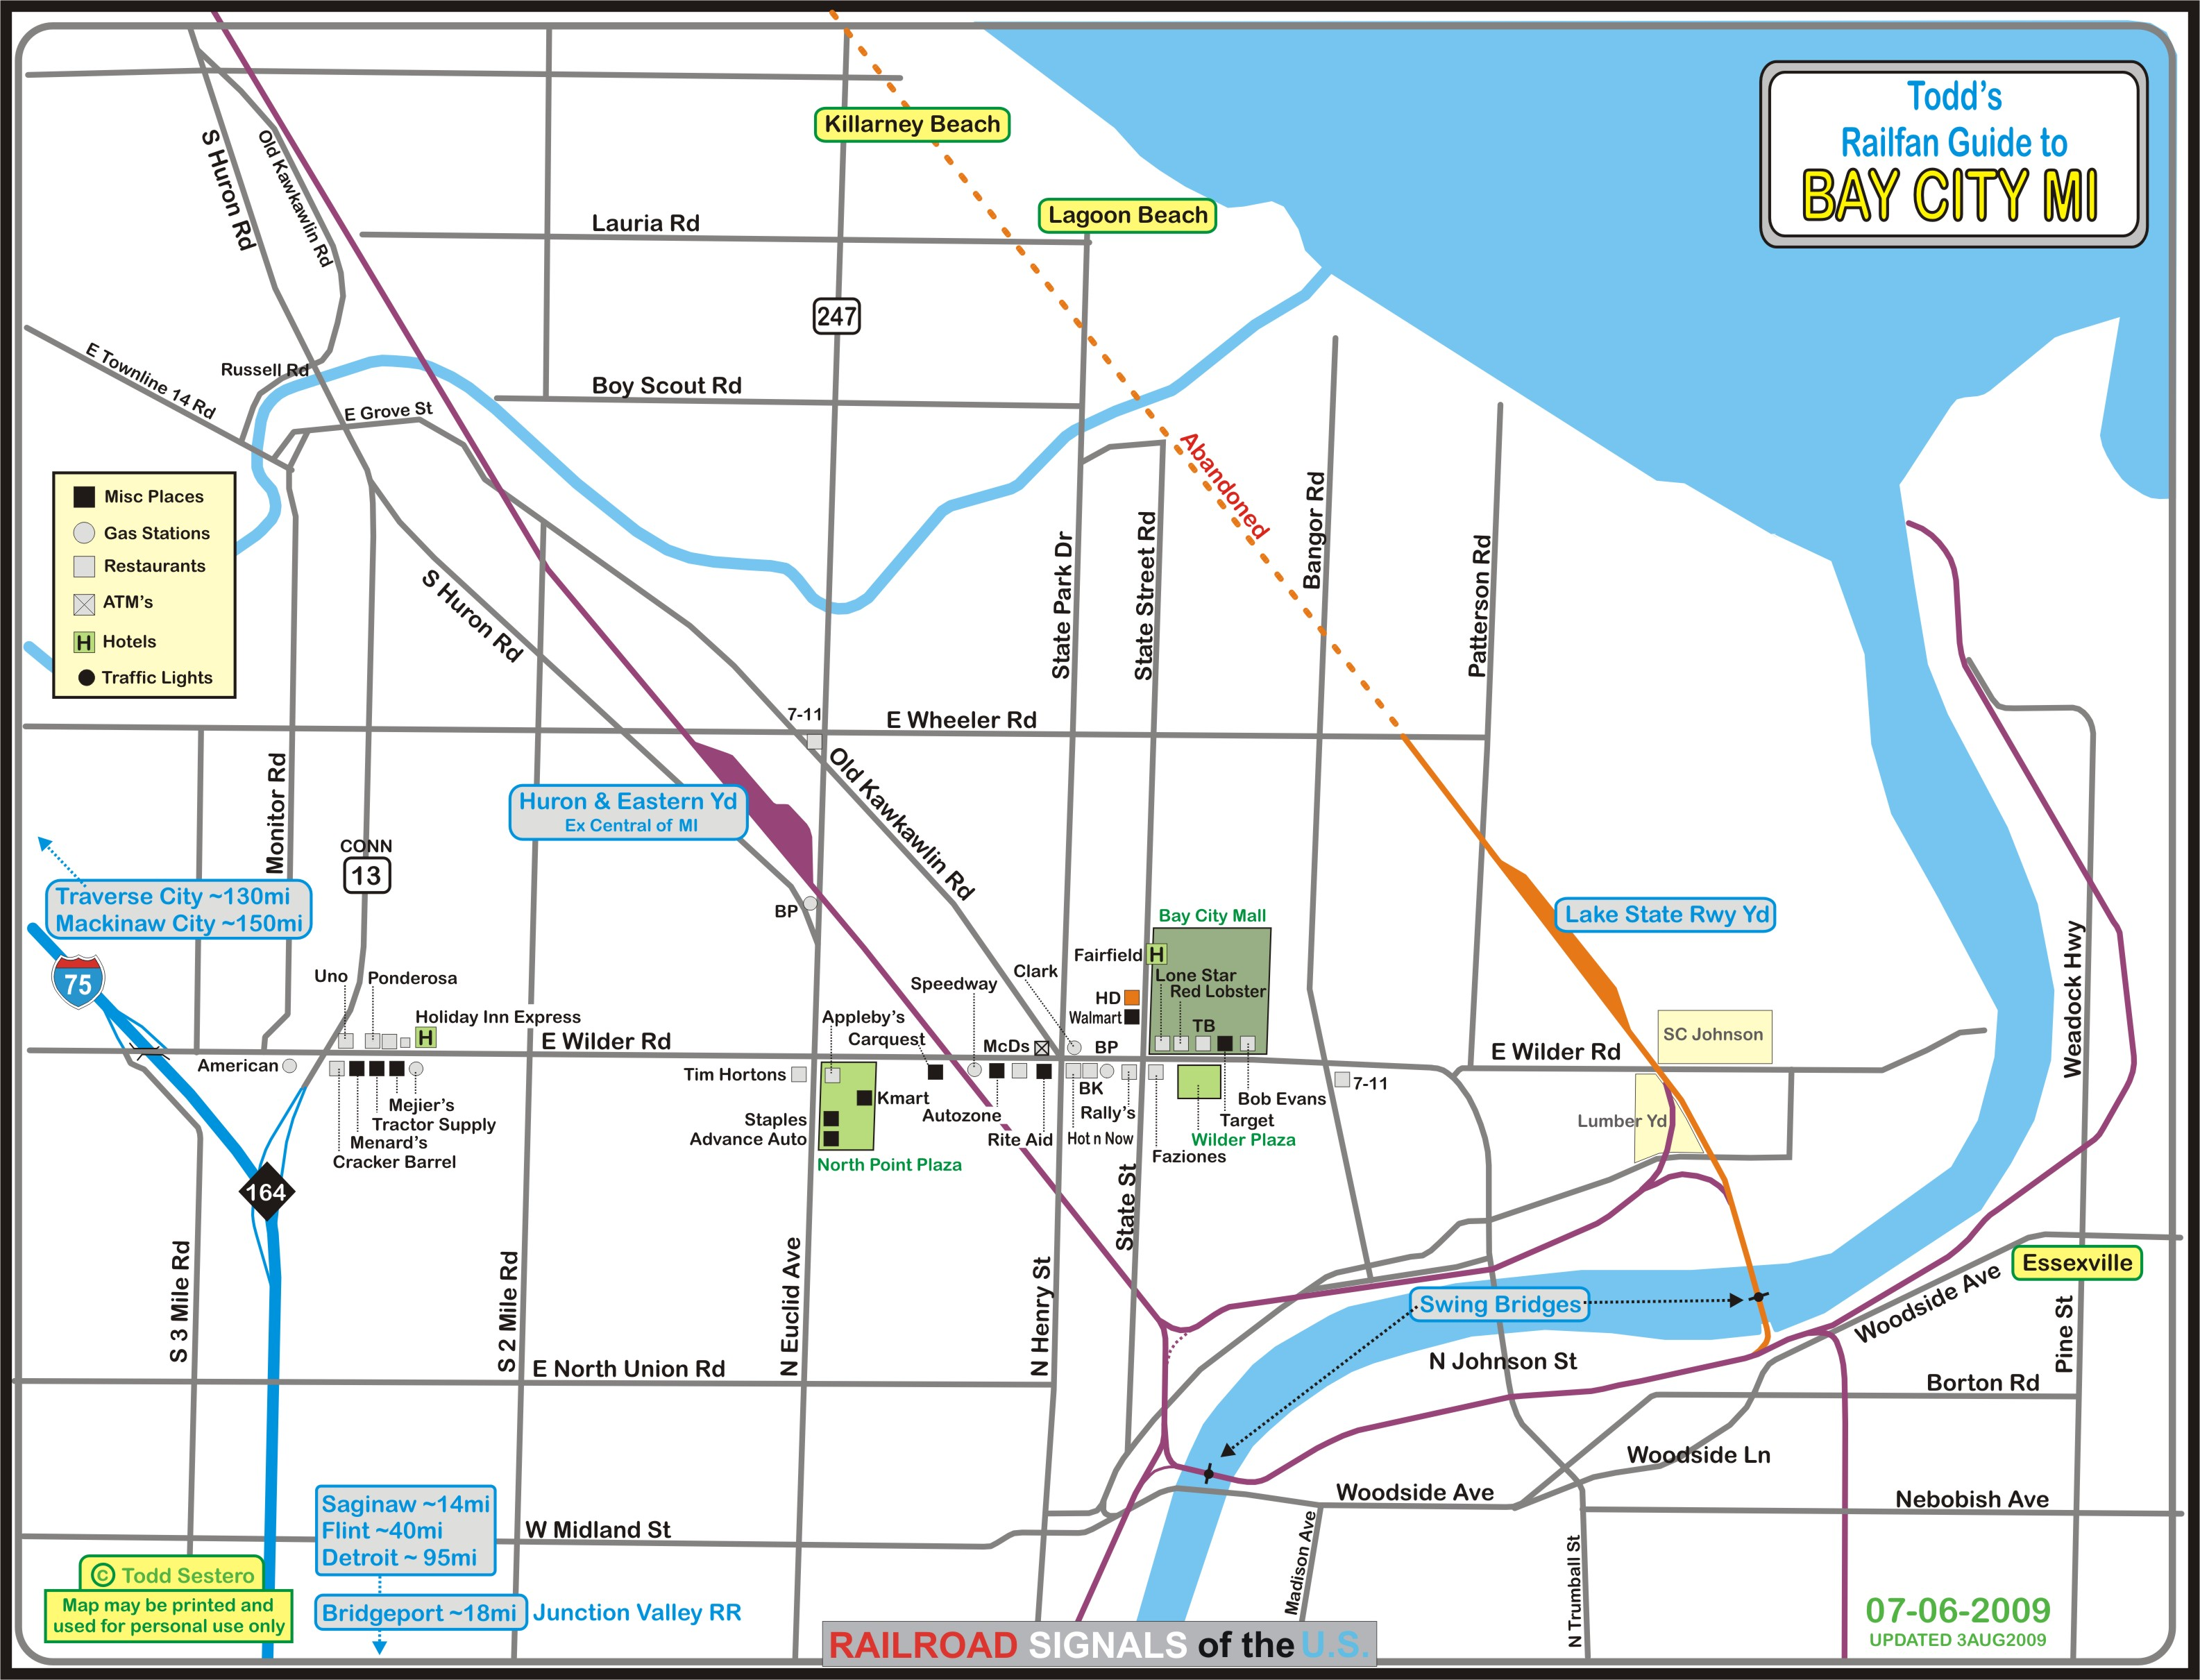 Bay City Map Bay City MI Railfan Guide